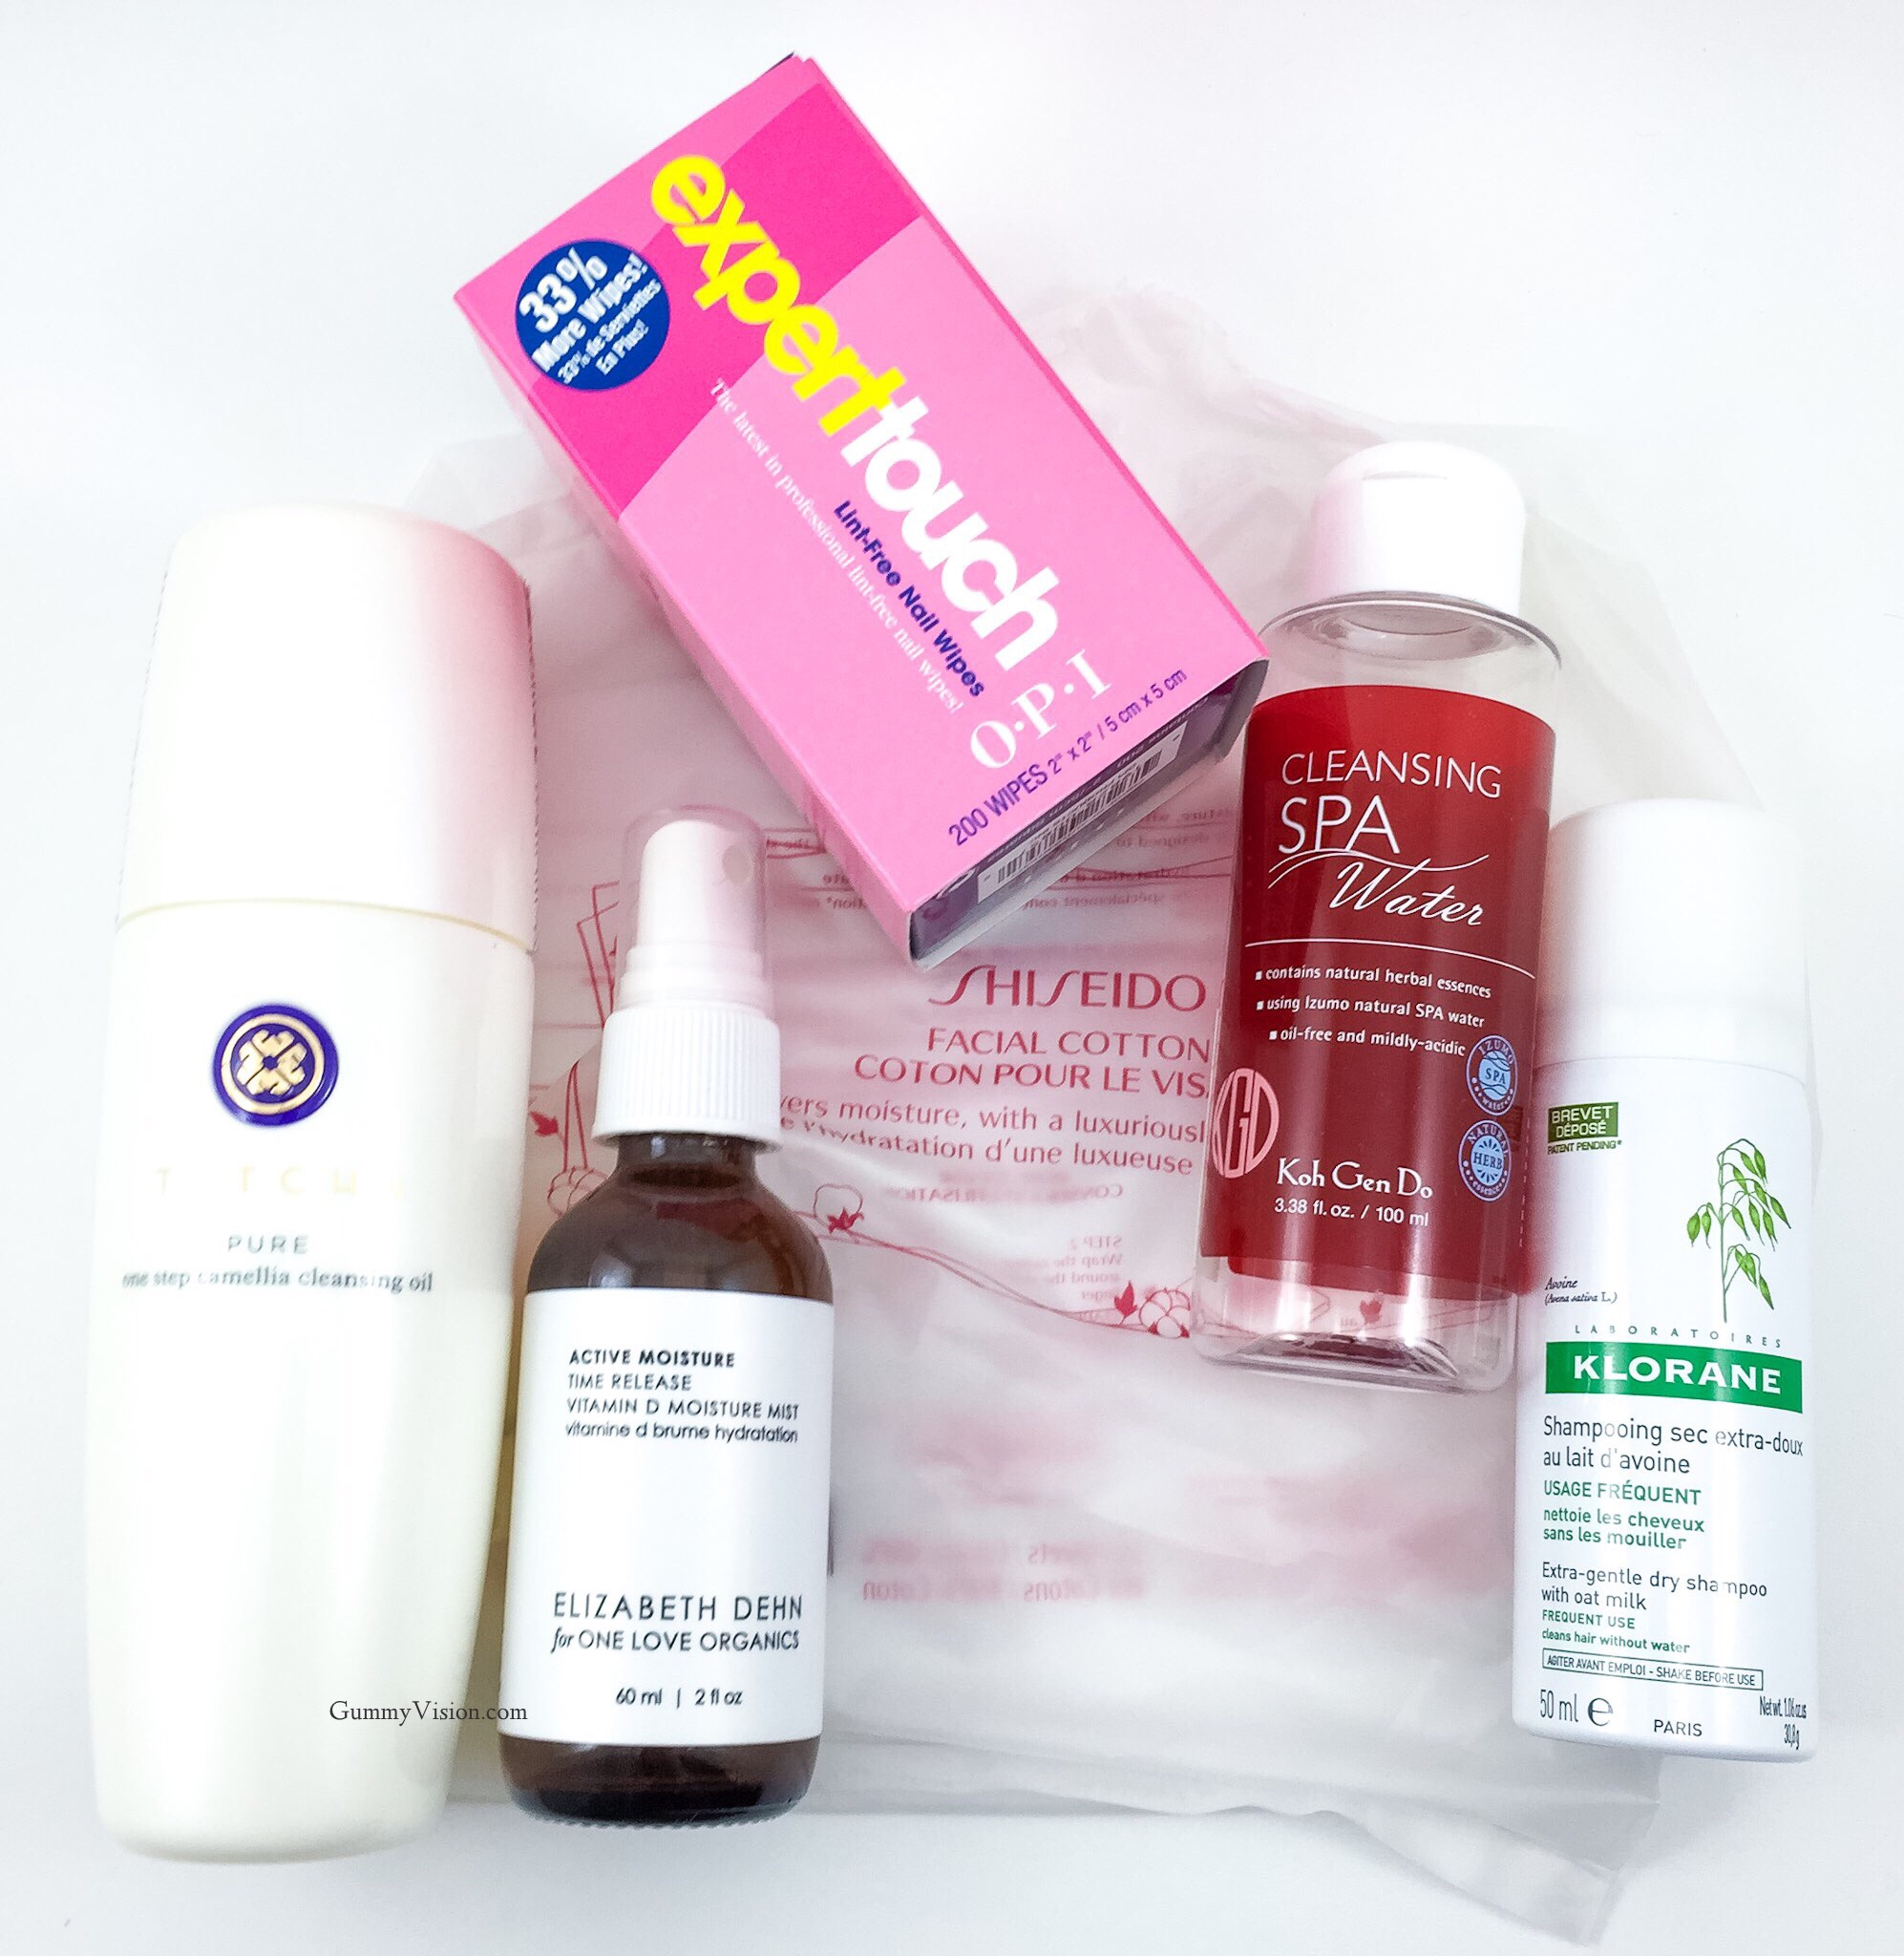 Empties: September 2014 - Tatcha One Step Camellia Cleansing Oil, Elizabeth Dehn for One Love Organics Active Moisture Time Release Vitamin D Moisture Mist, Shiseido Facial Cotton, Koh Gen Do Cleansing Spa Water, Klorane Dry Shampoo, OPI Expert Touch Lint Free Nail Wipes